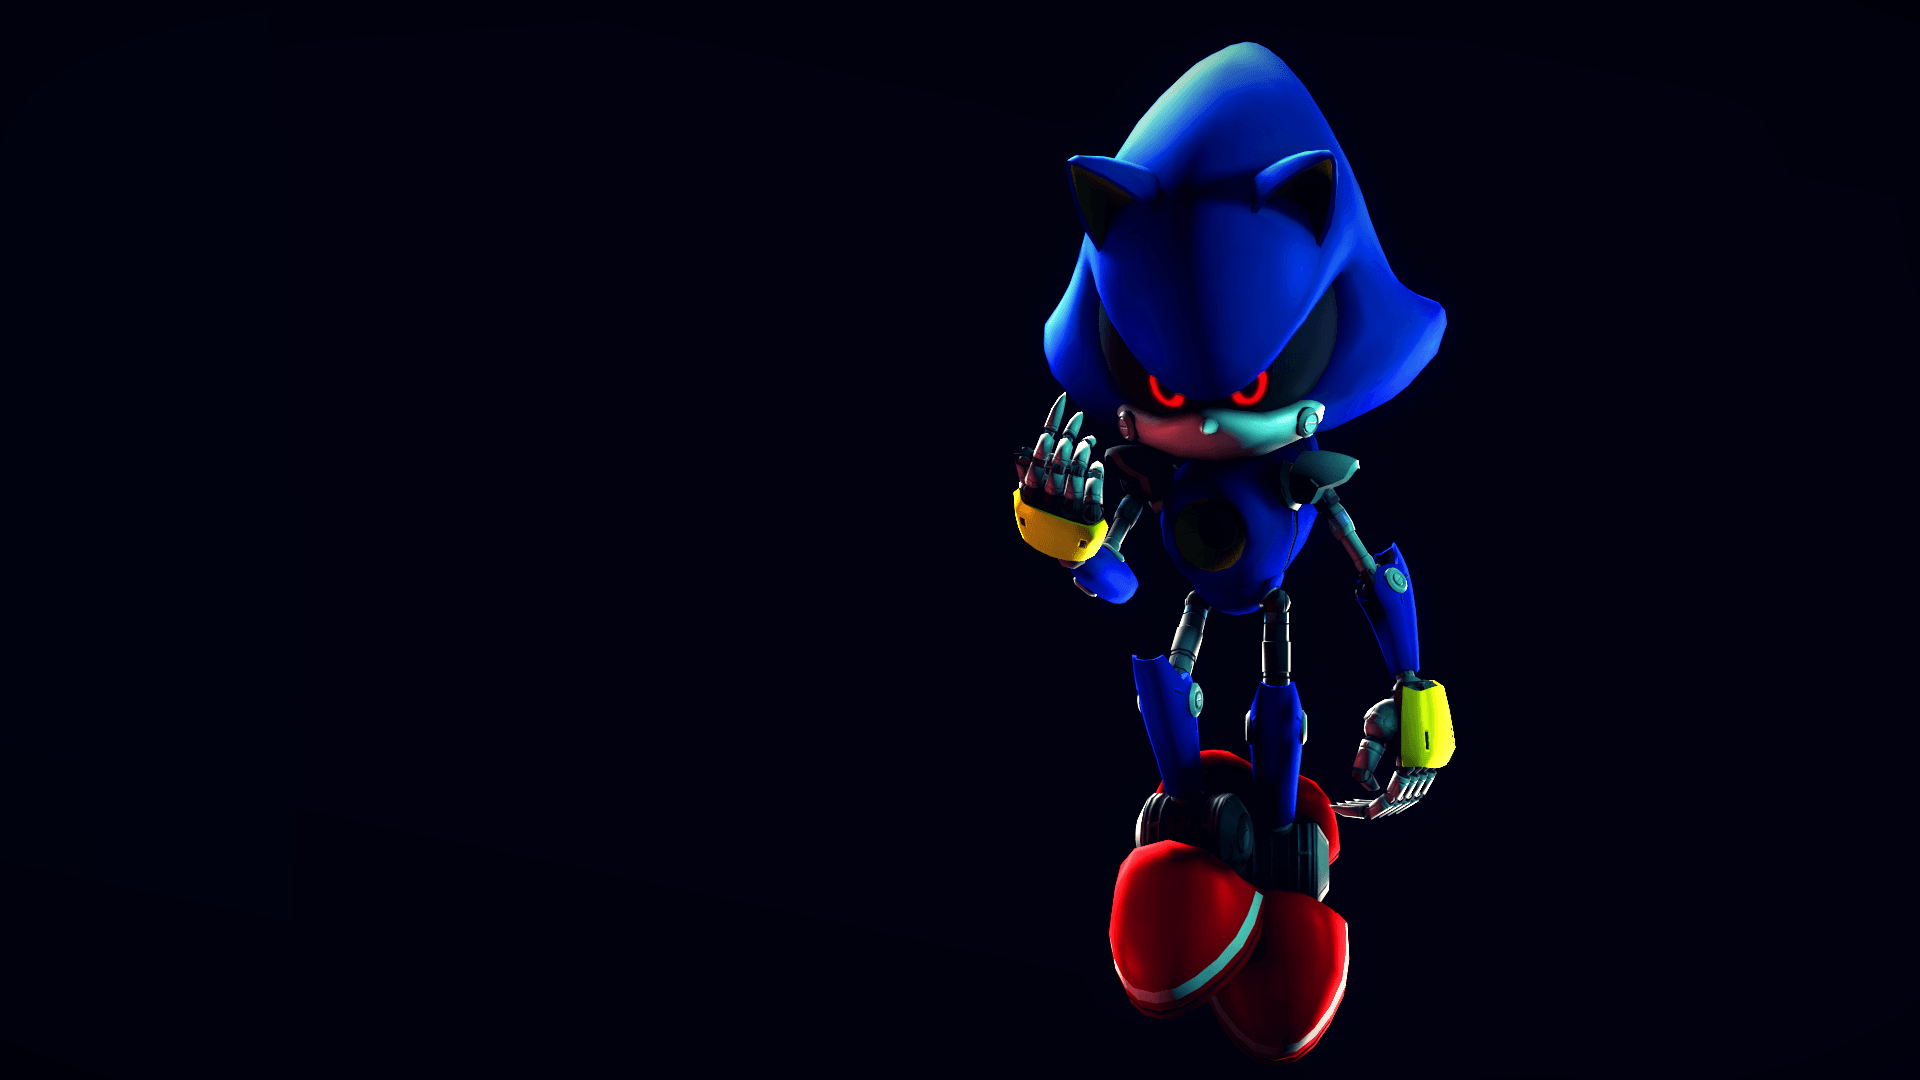 metal sonic wallpaper  Metal Sonic Wallpapers - Wallpaper Cave